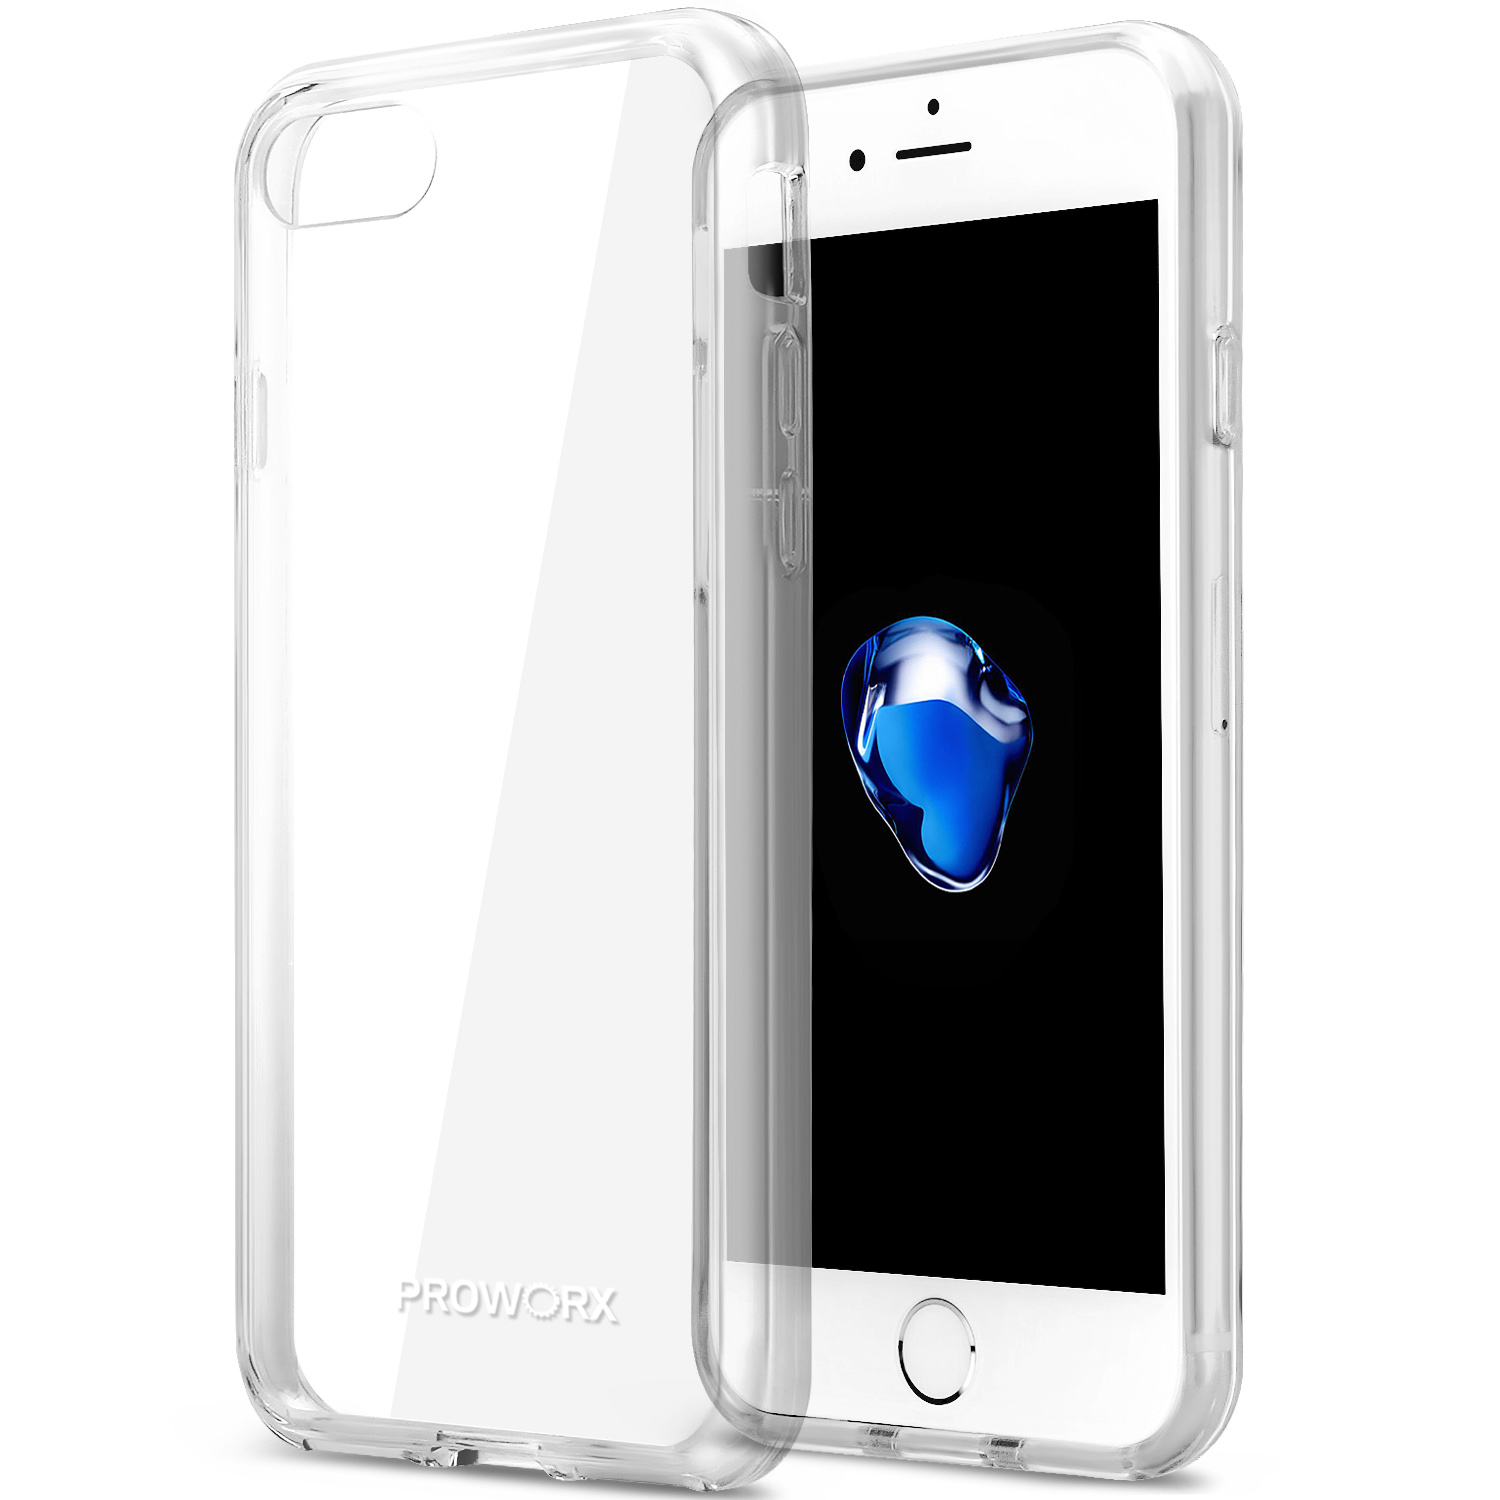 Apple iPhone 6 6S (4.7) Clear ProWorx Shock Absorption Case Bumper TPU & Anti-Scratch Clear Back Cover